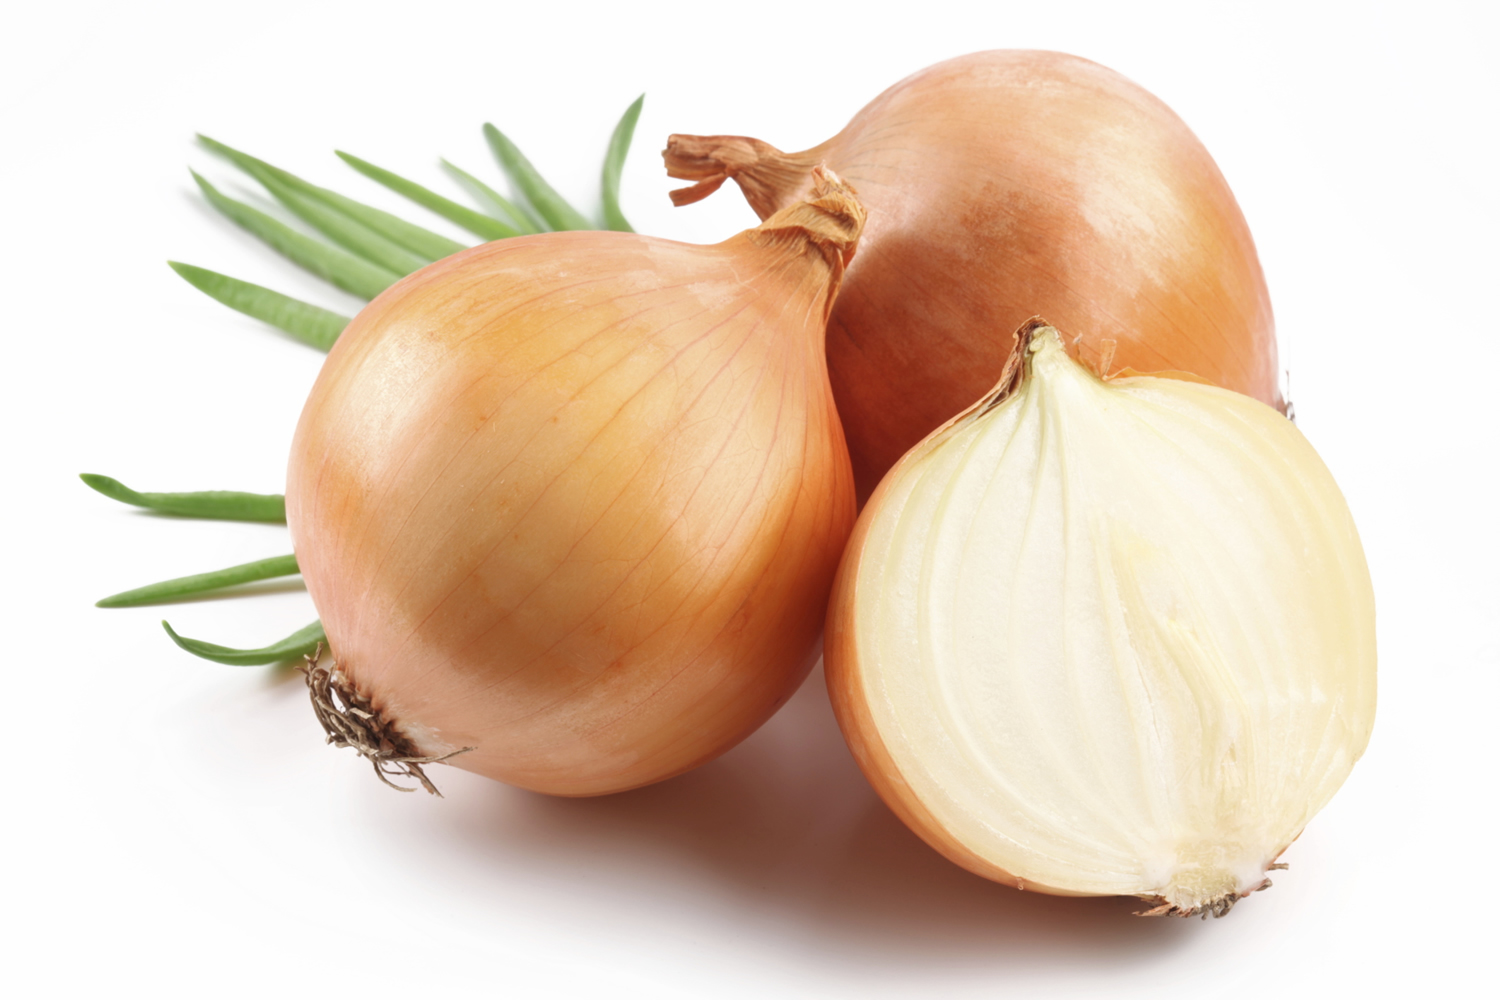 Onions Nutrition Facts: Calories and Health Benefits